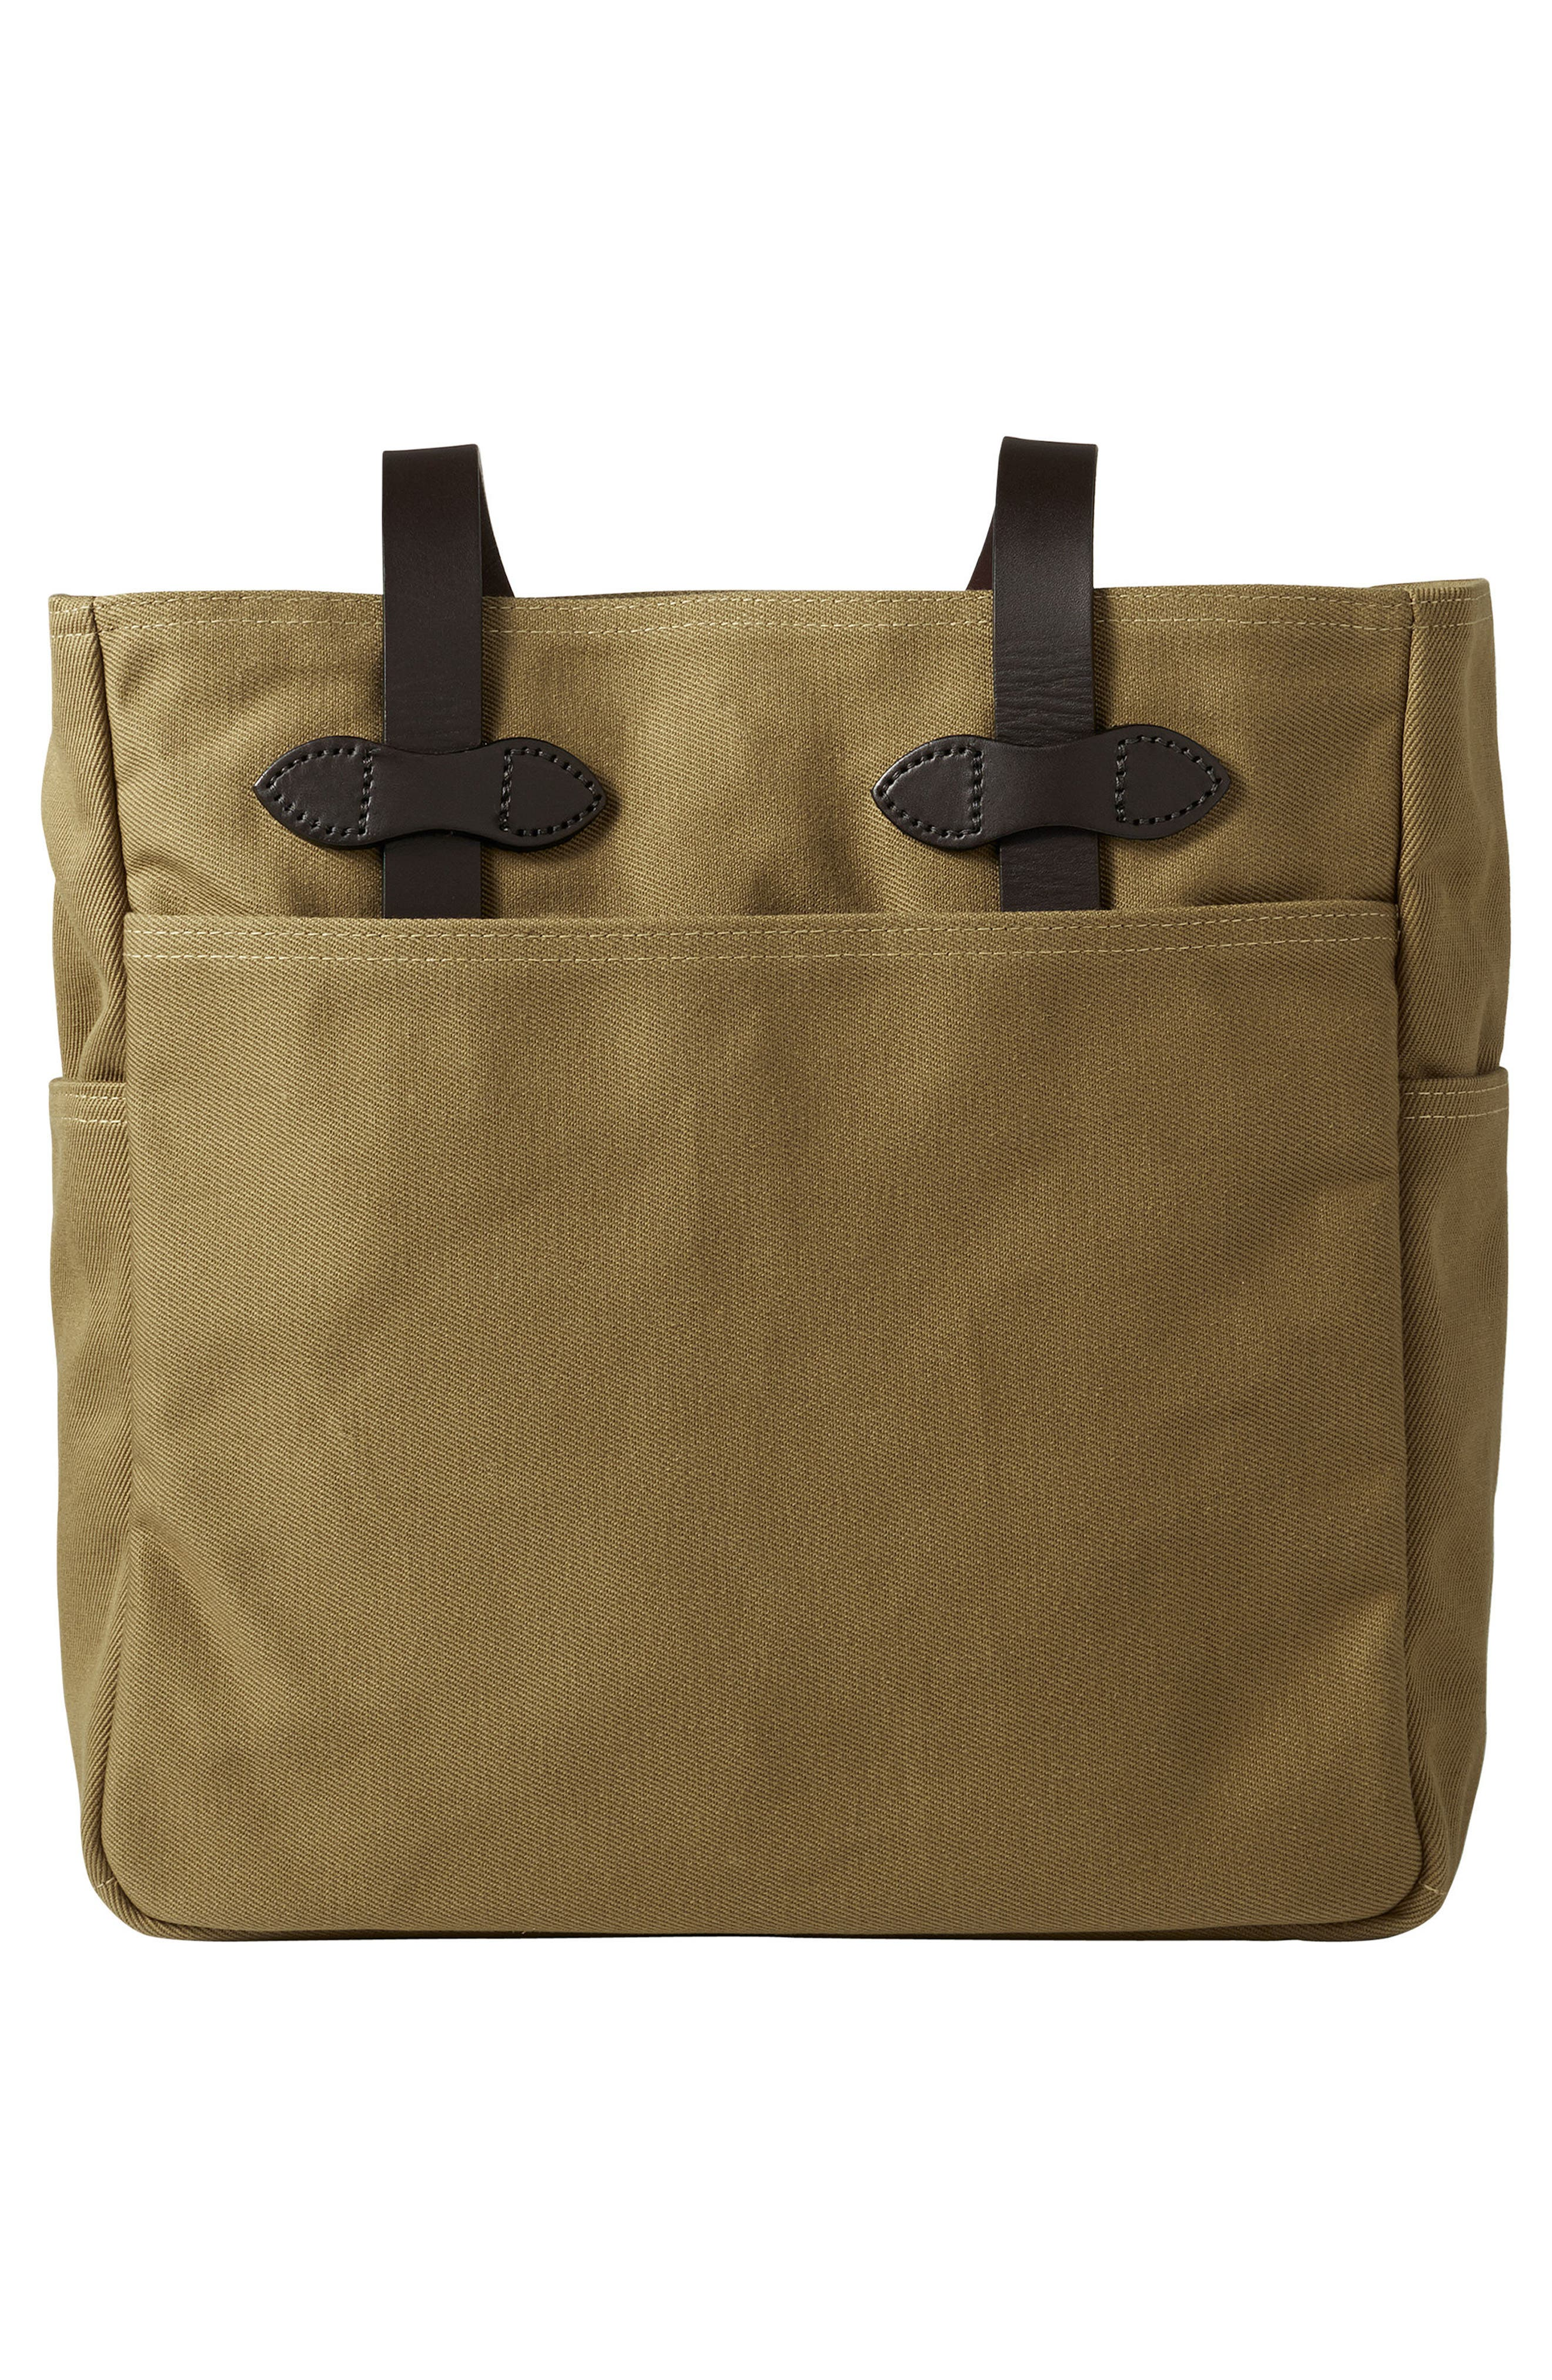 Rugged Twill Tote Bag,                             Alternate thumbnail 2, color,                             242